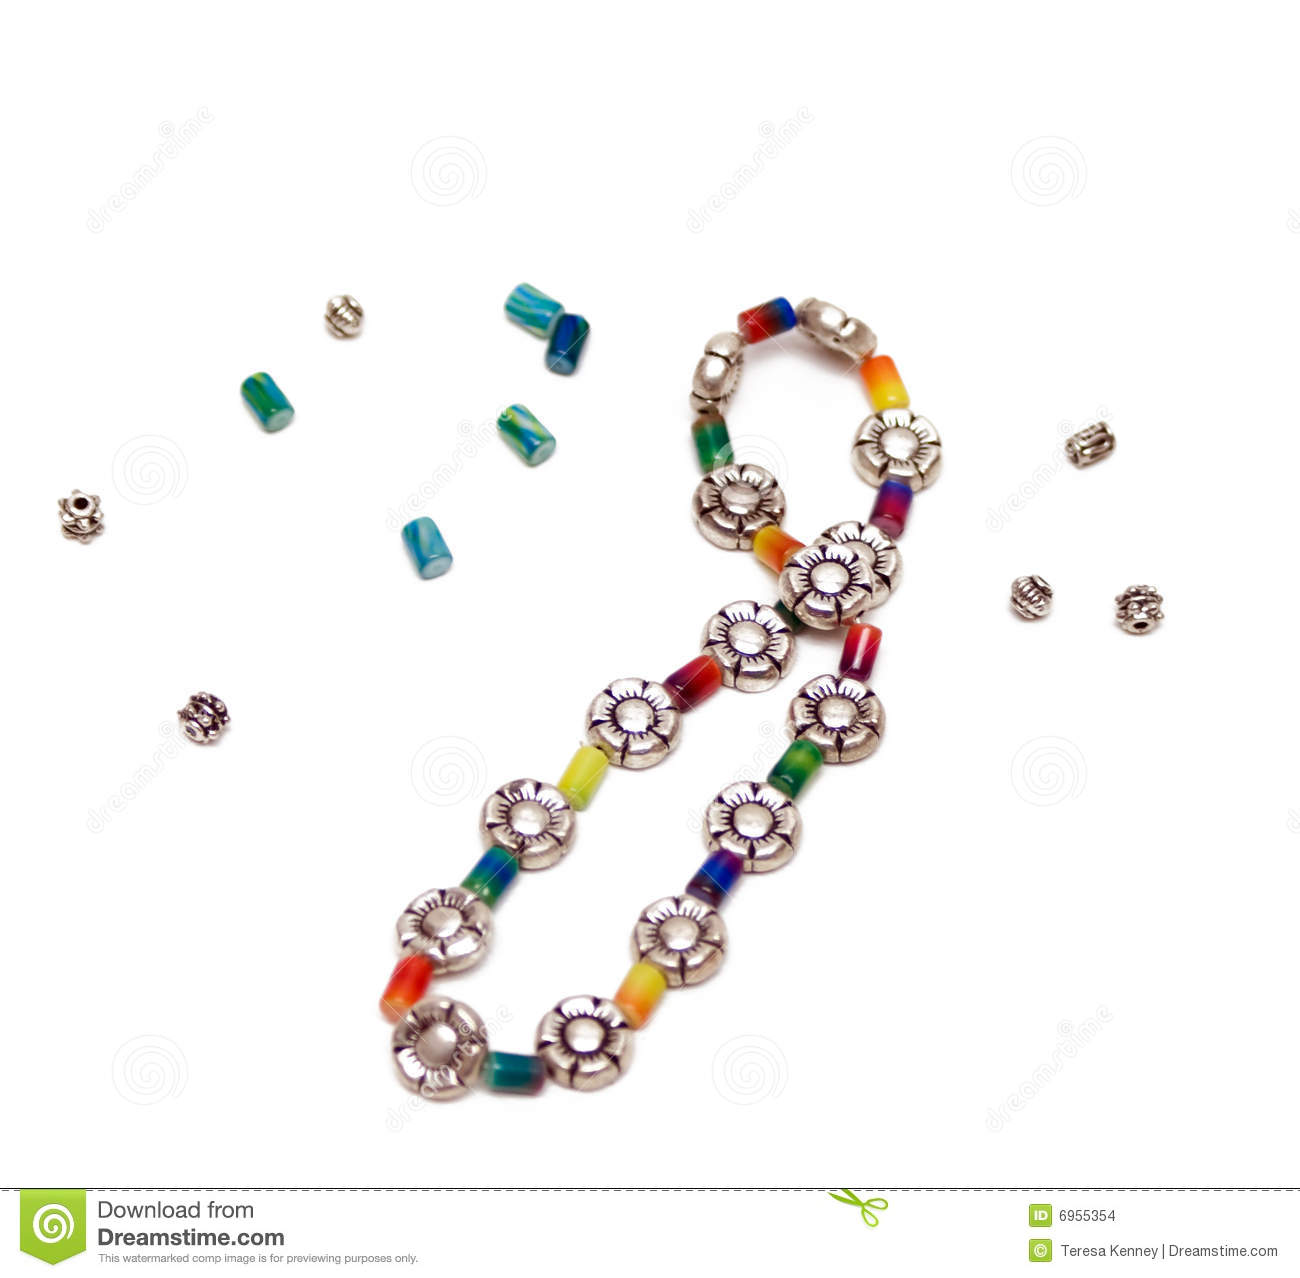 how to start artificial jewellery business at home